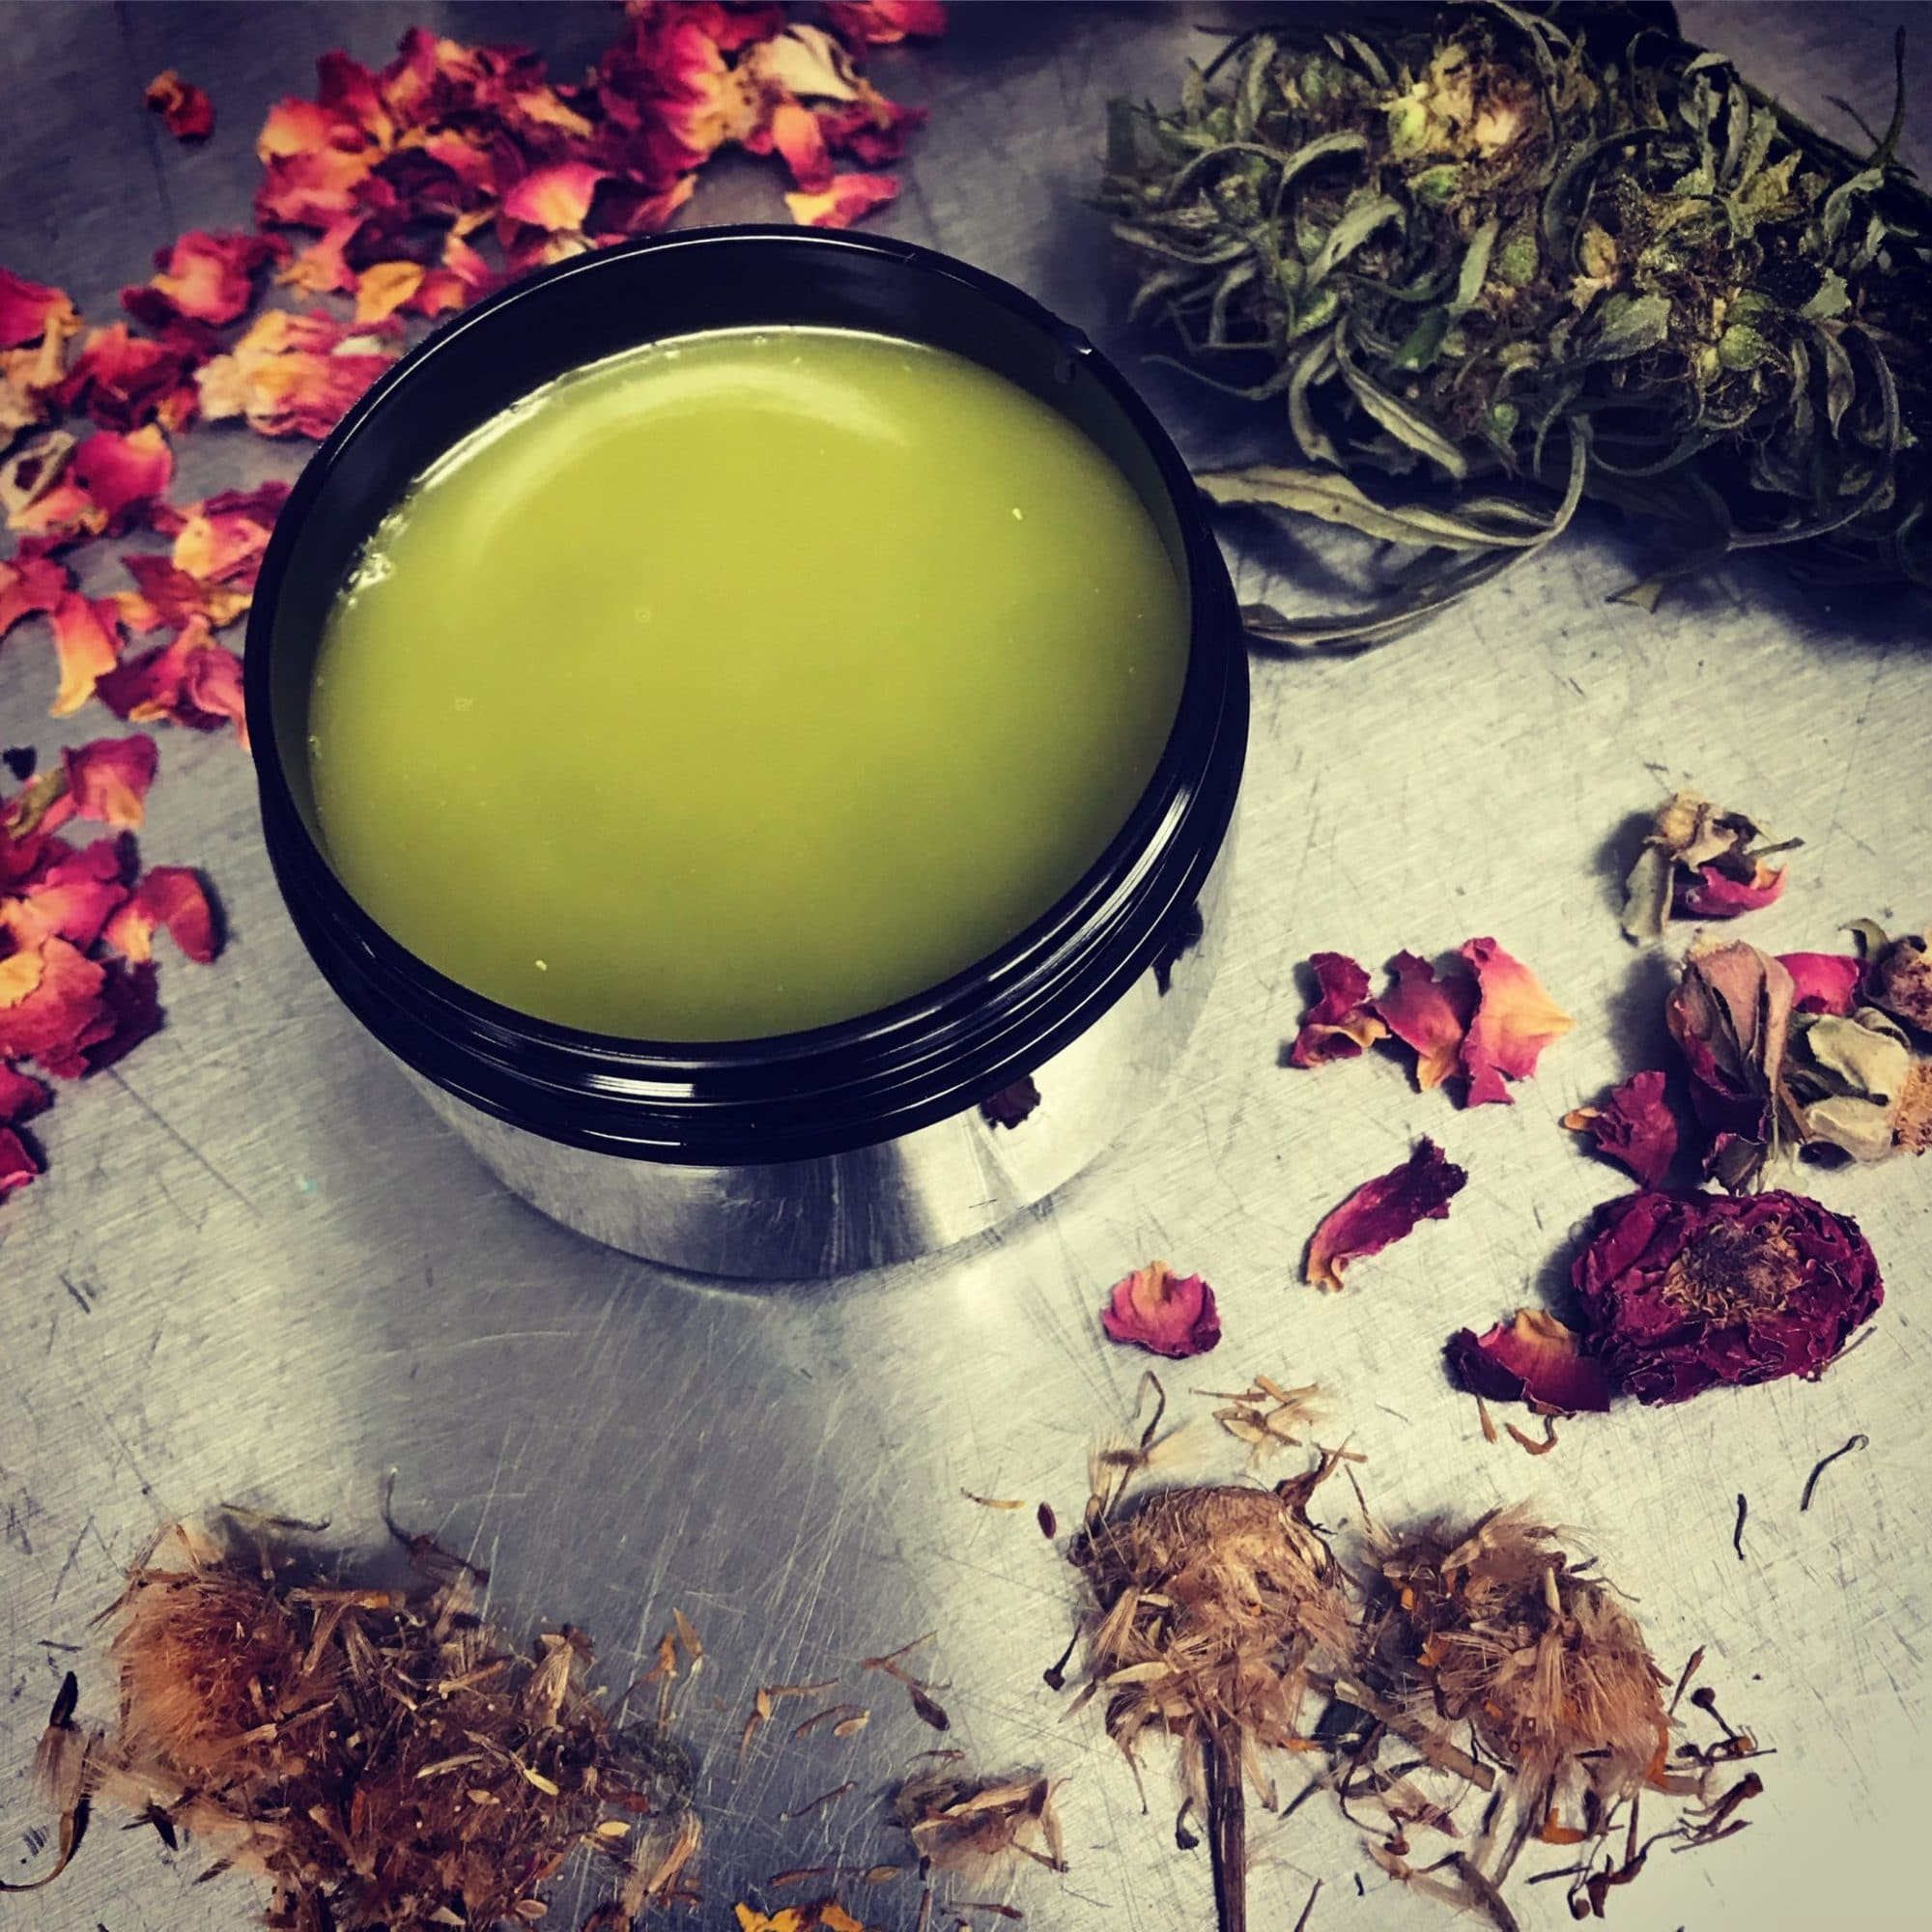 CBD Herbal Salve hardening while surrounded by herbs including pink roses, horsetail and hemp on a stainless steel table